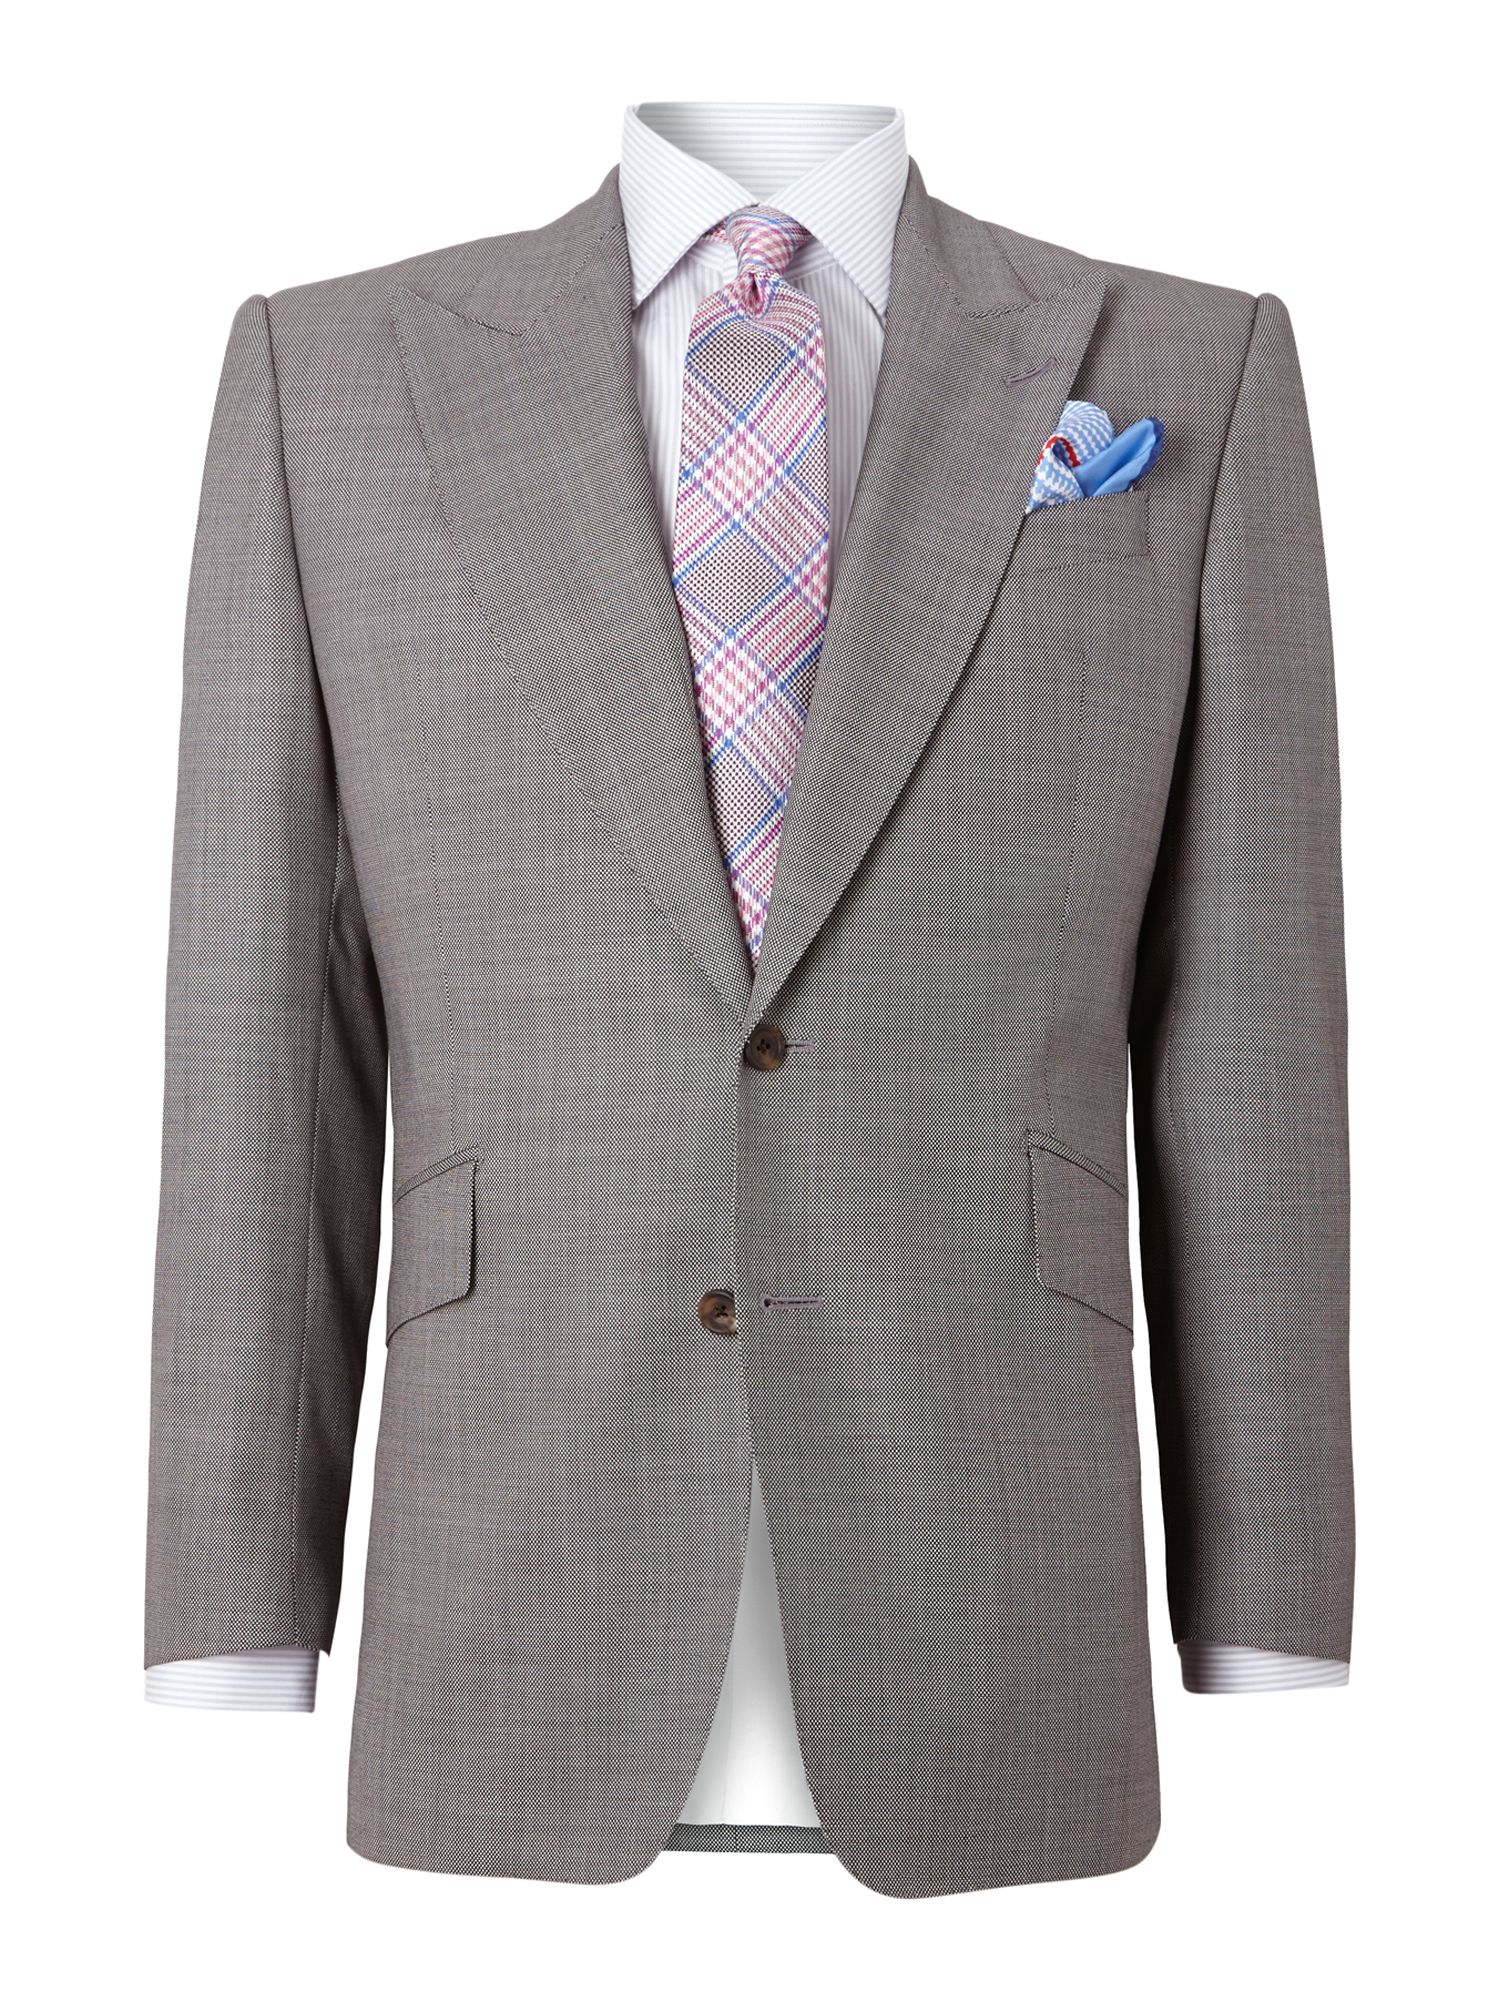 Ebury contemporary fit suit